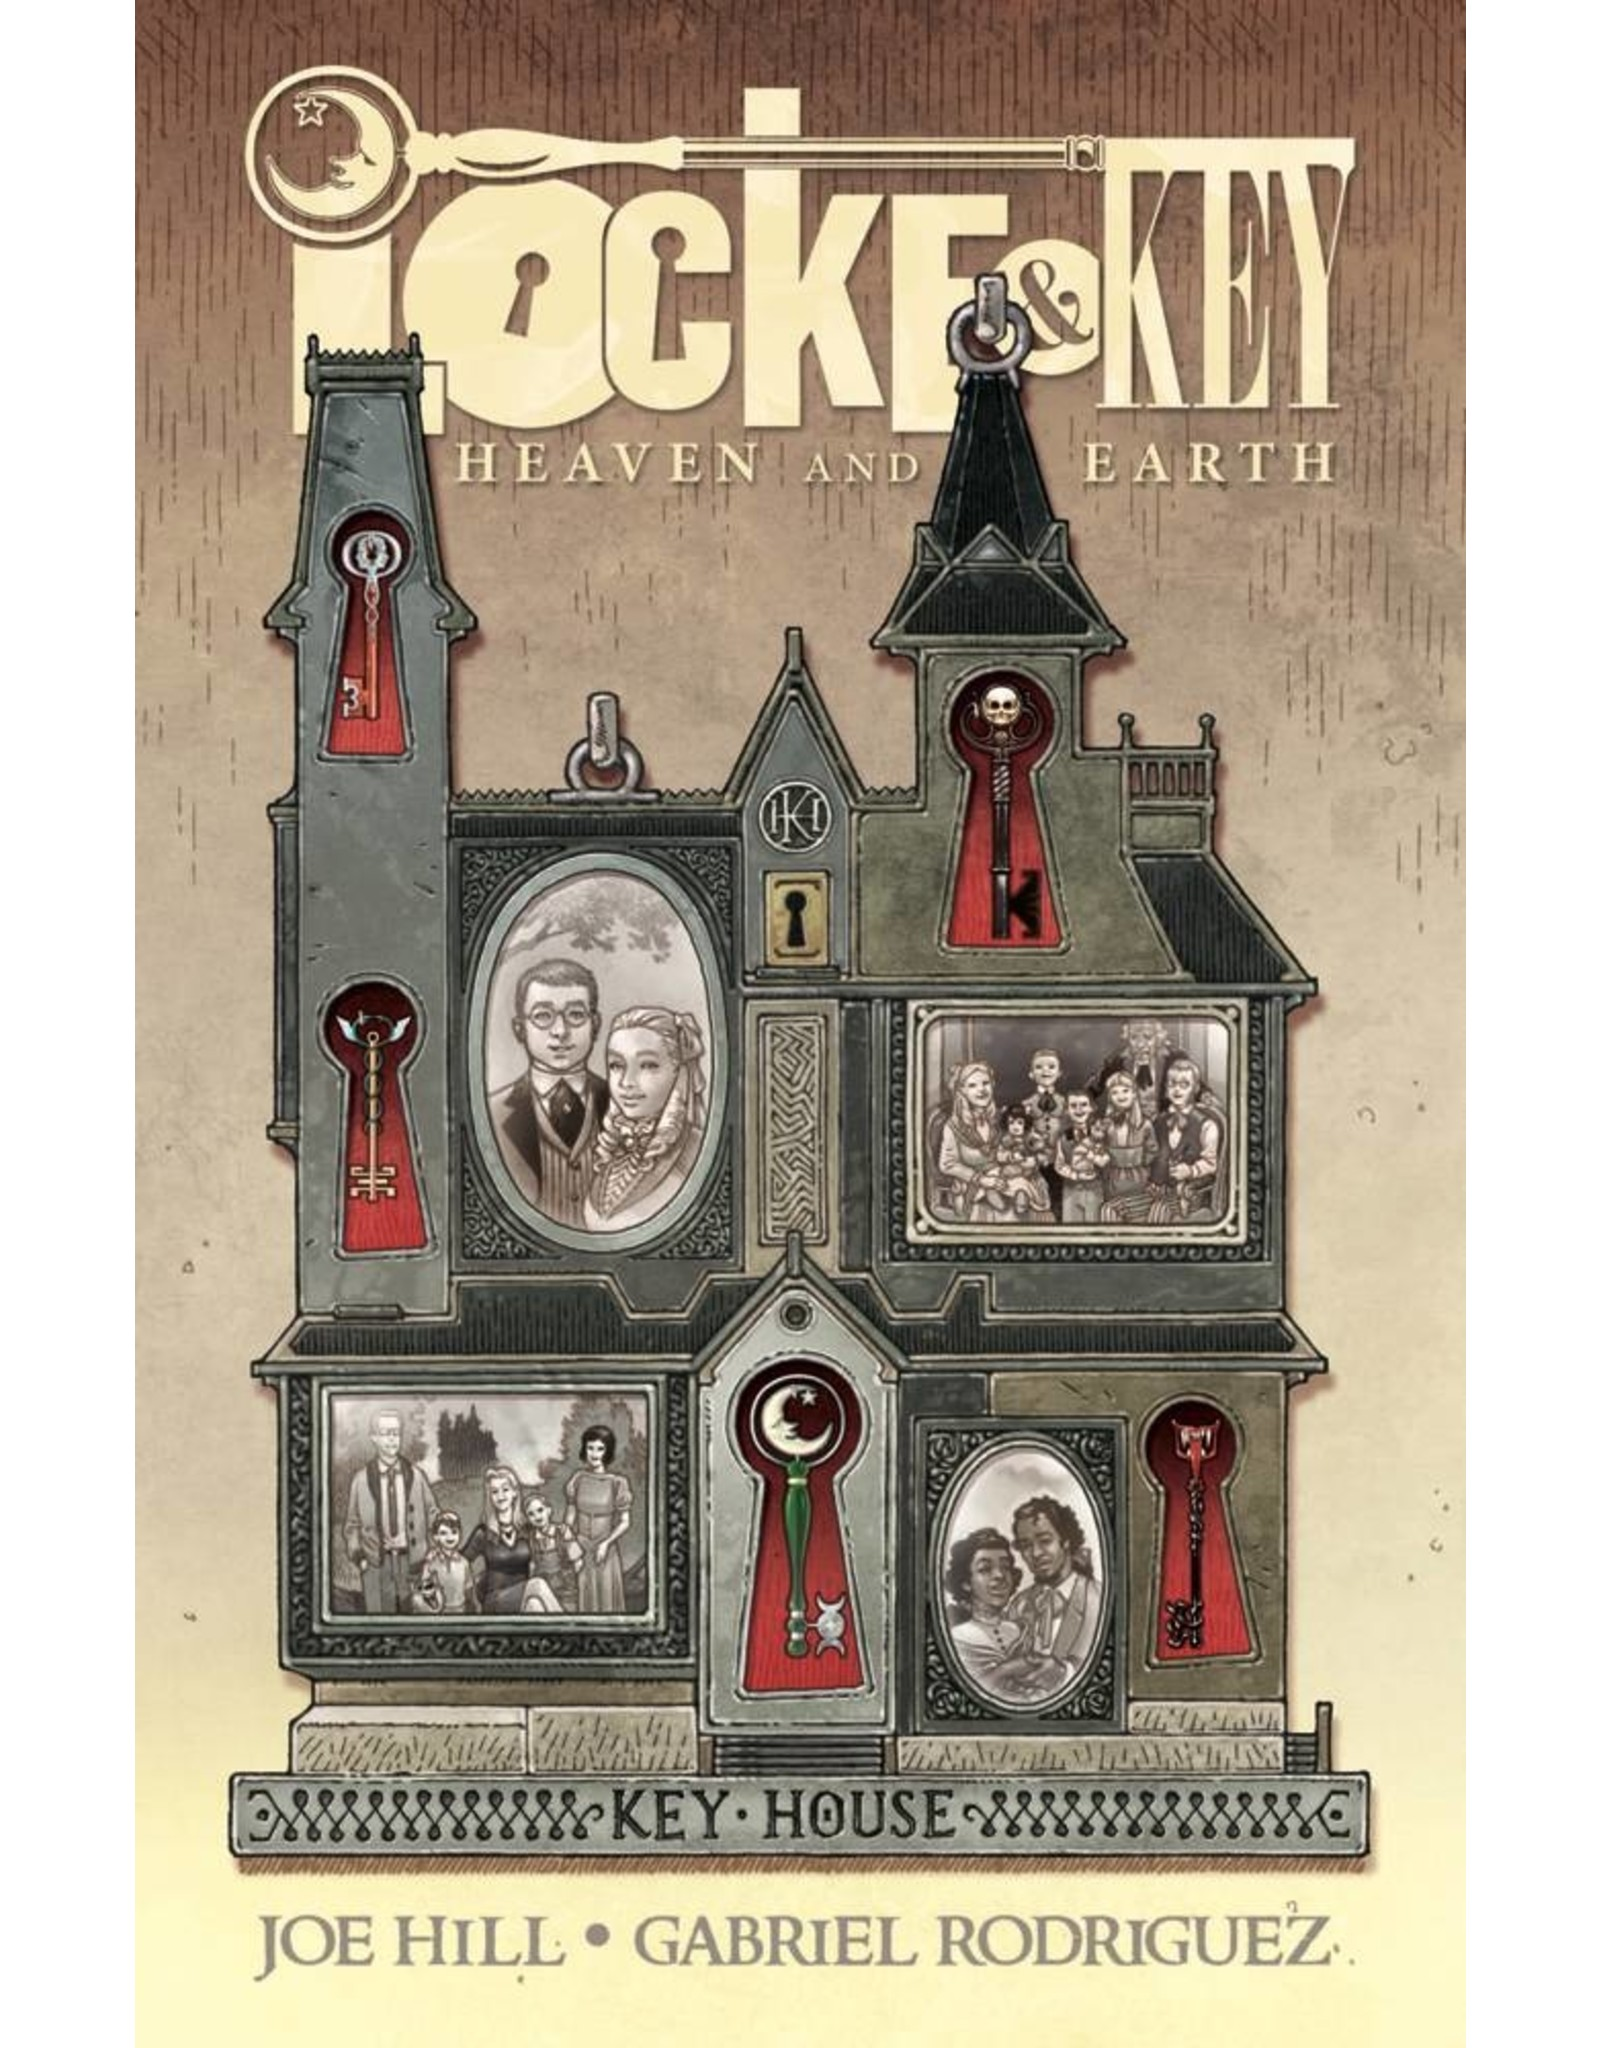 IDW PUBLISHING LOCKE & KEY HEAVEN & EARTH DLX HC ED